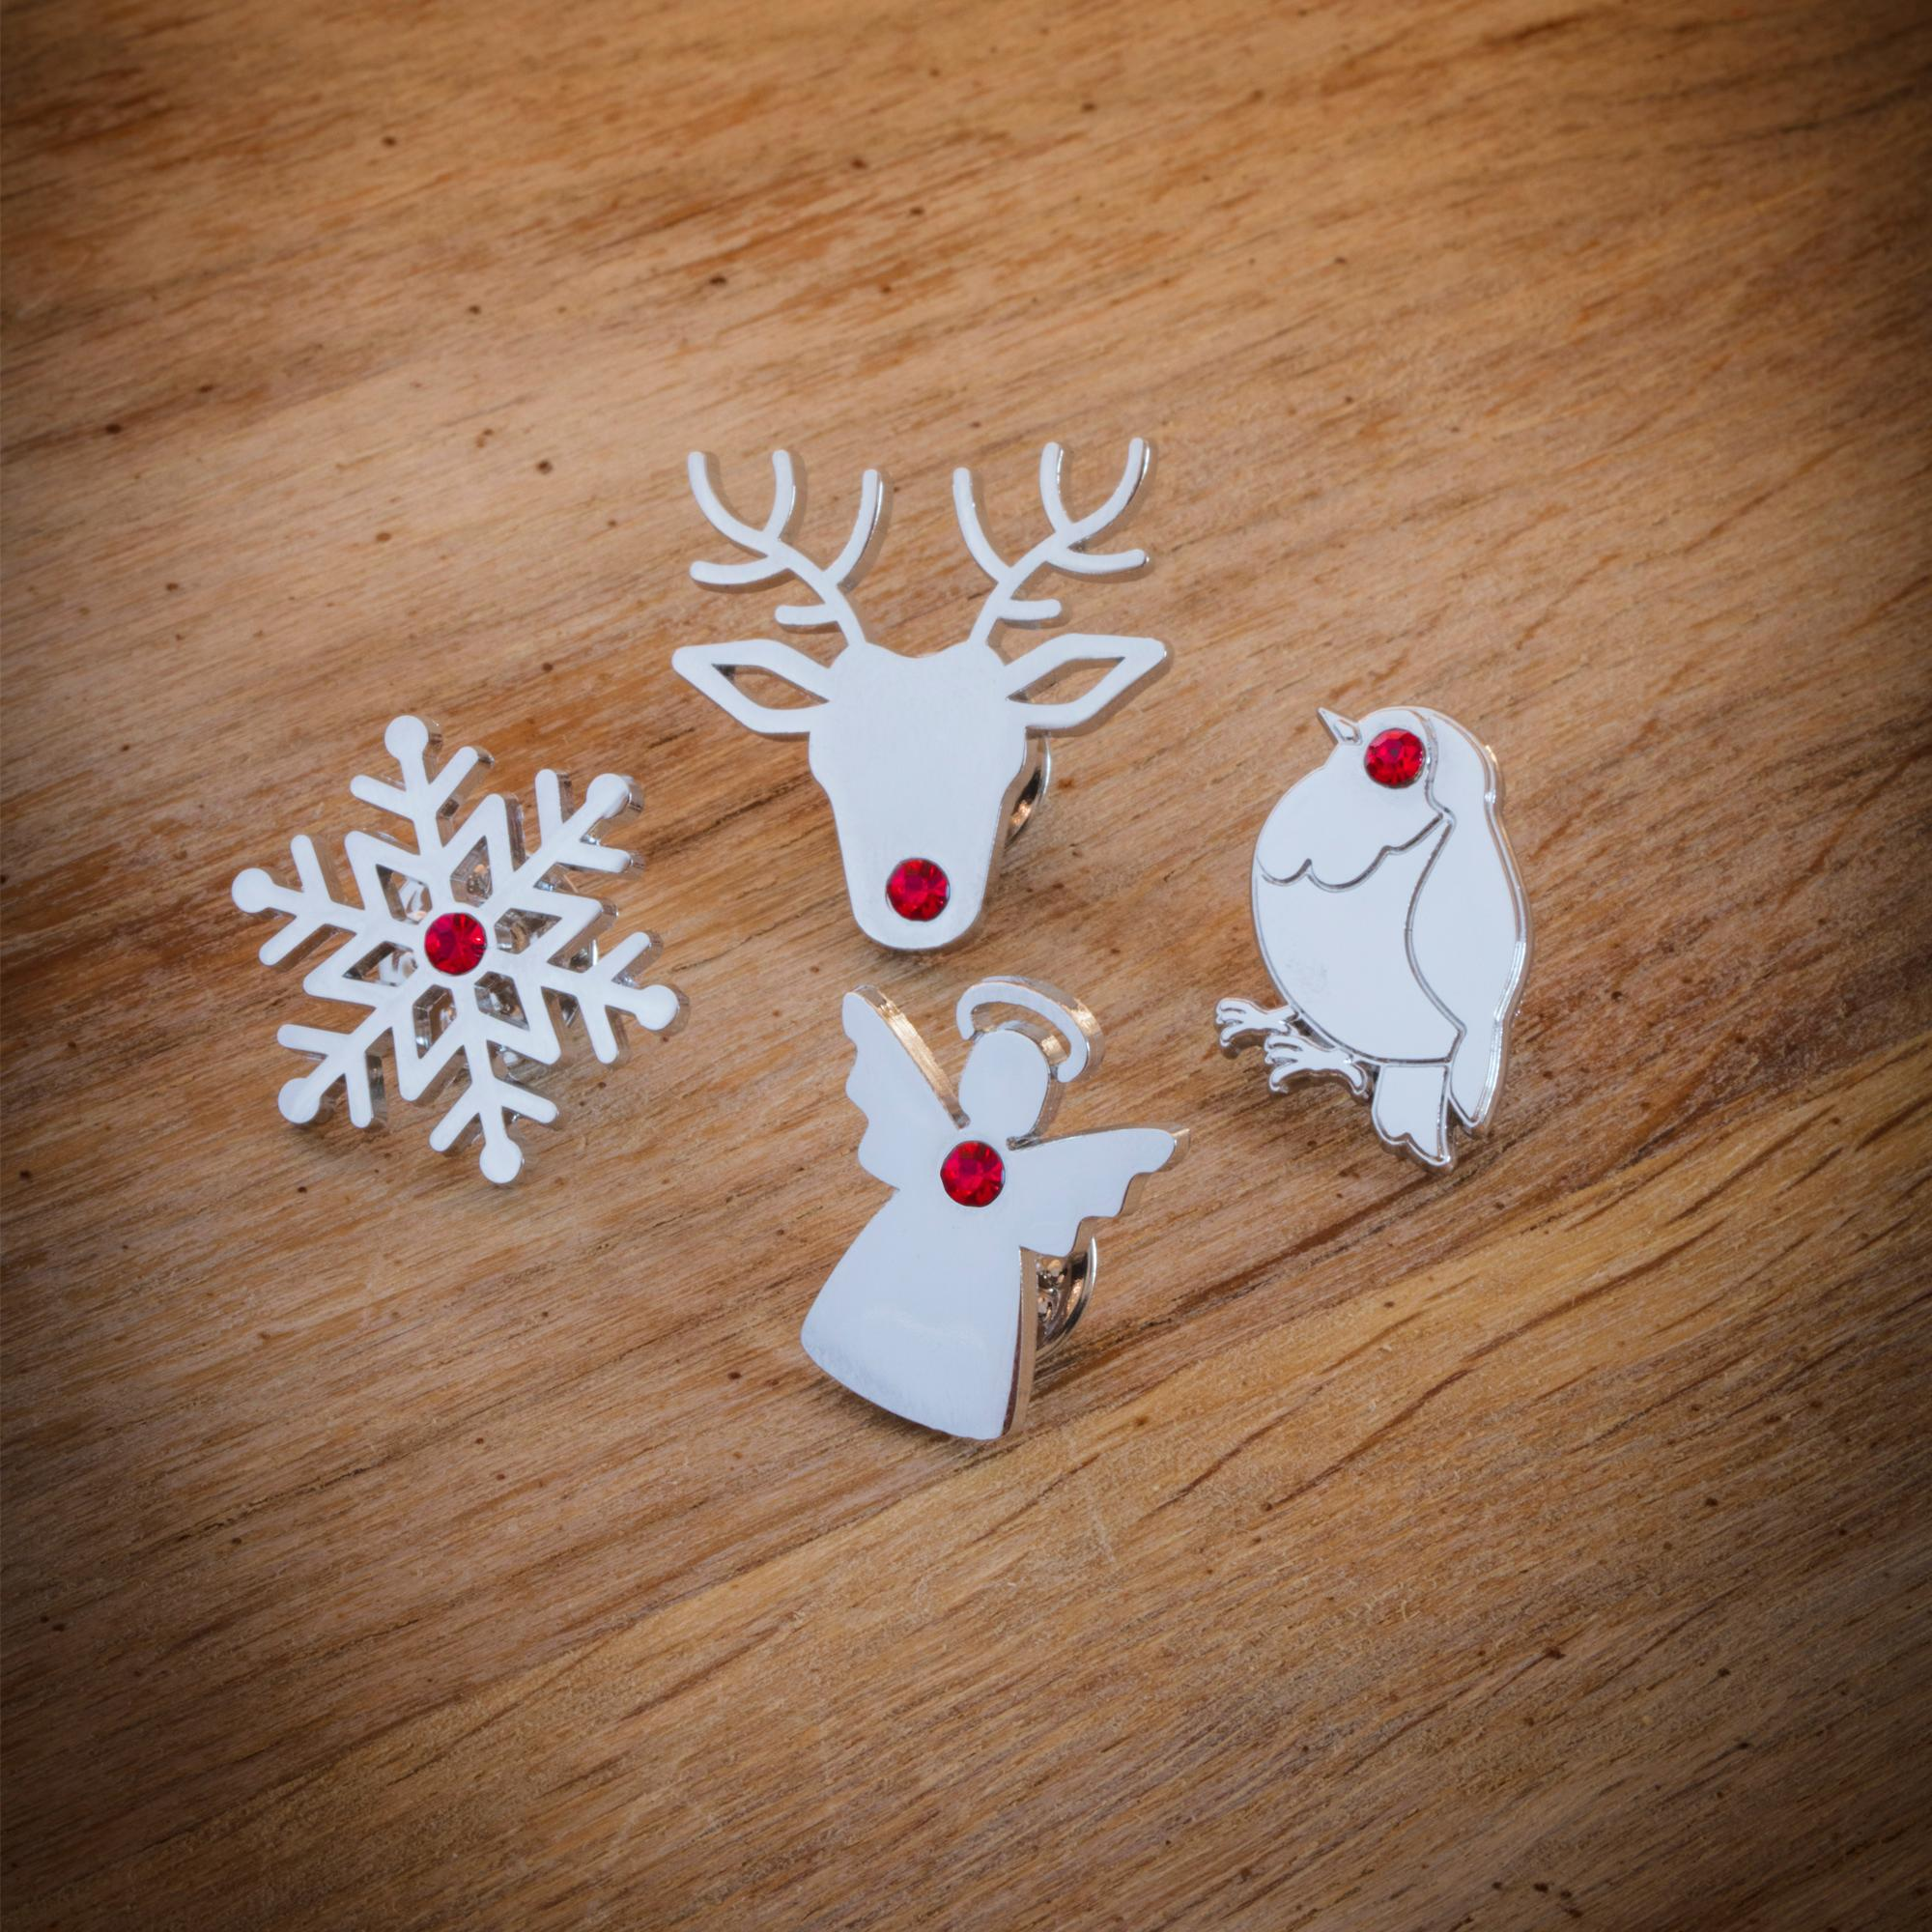 Christmas Pin Badge Set Cancer Research Uk Online Shop